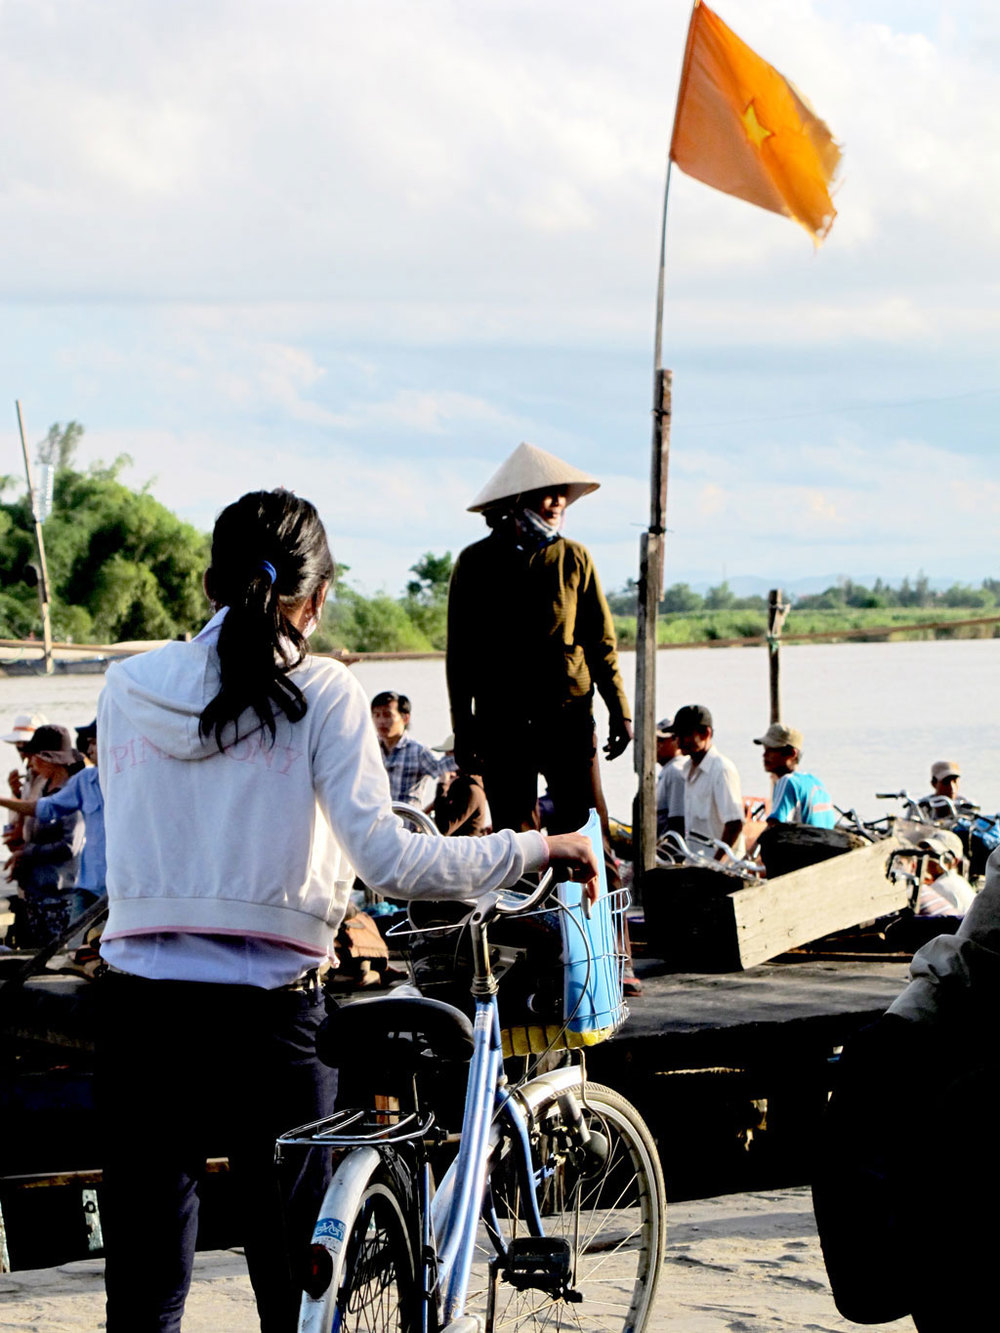 Vietnamese girl with bicycle with vietnamese holding a #VetnamVietnam flag / sergivich.com